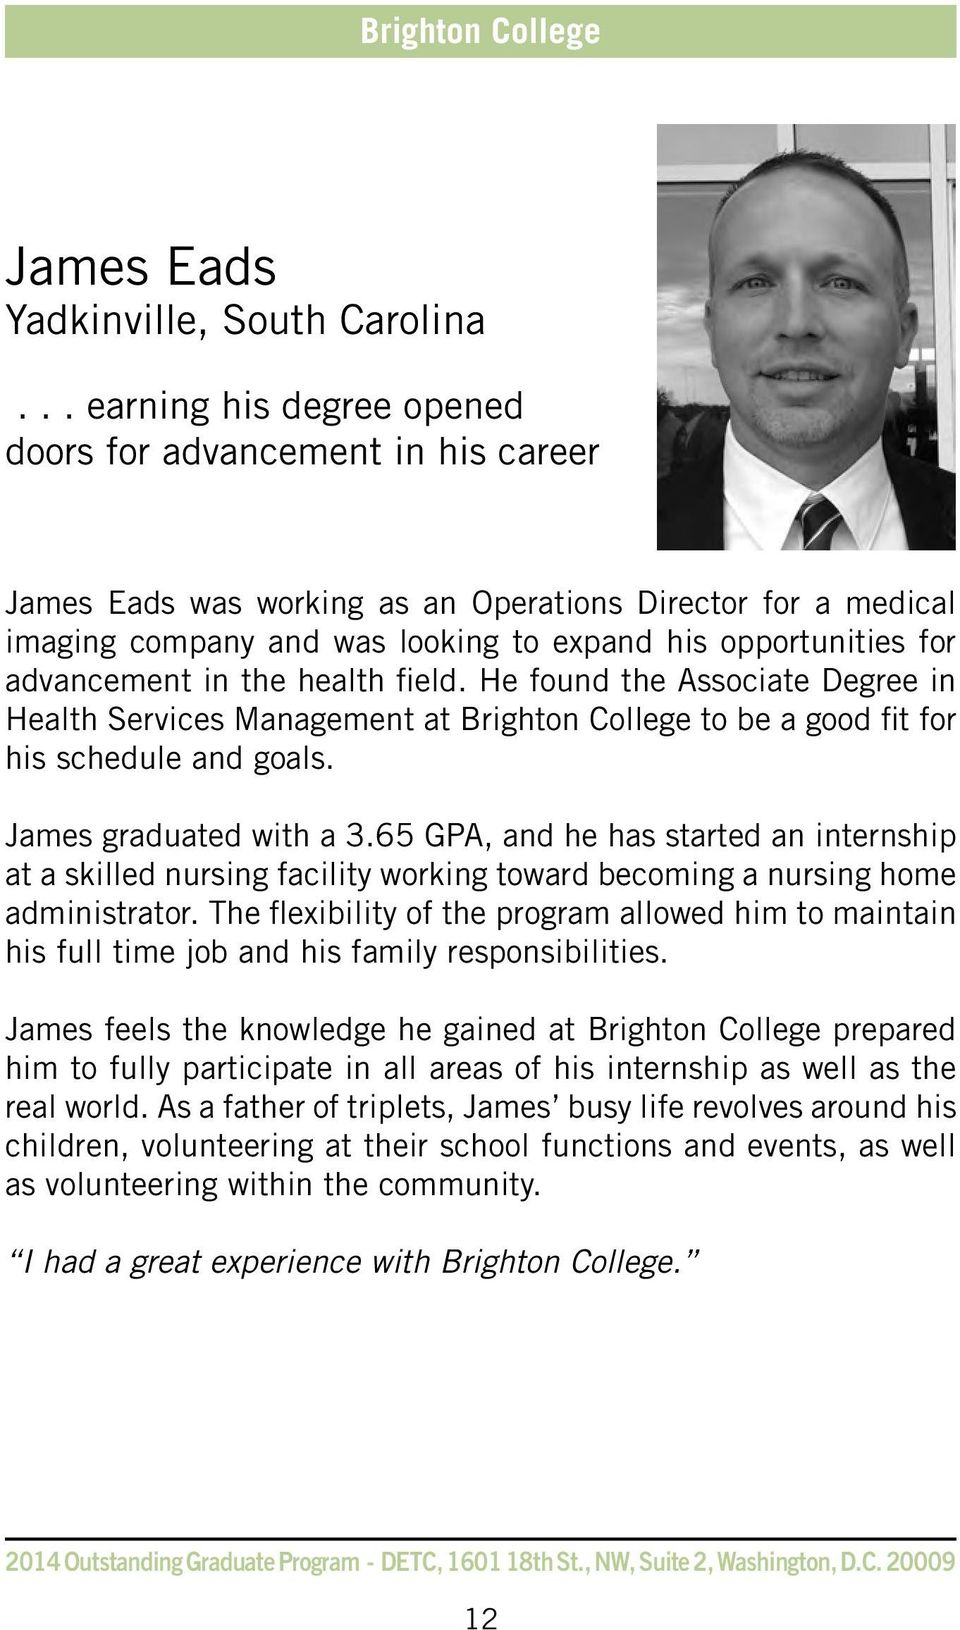 advancement in the health field. He found the Associate Degree in Health Services Management at Brighton College to be a good fit for his schedule and goals. James graduated with a 3.